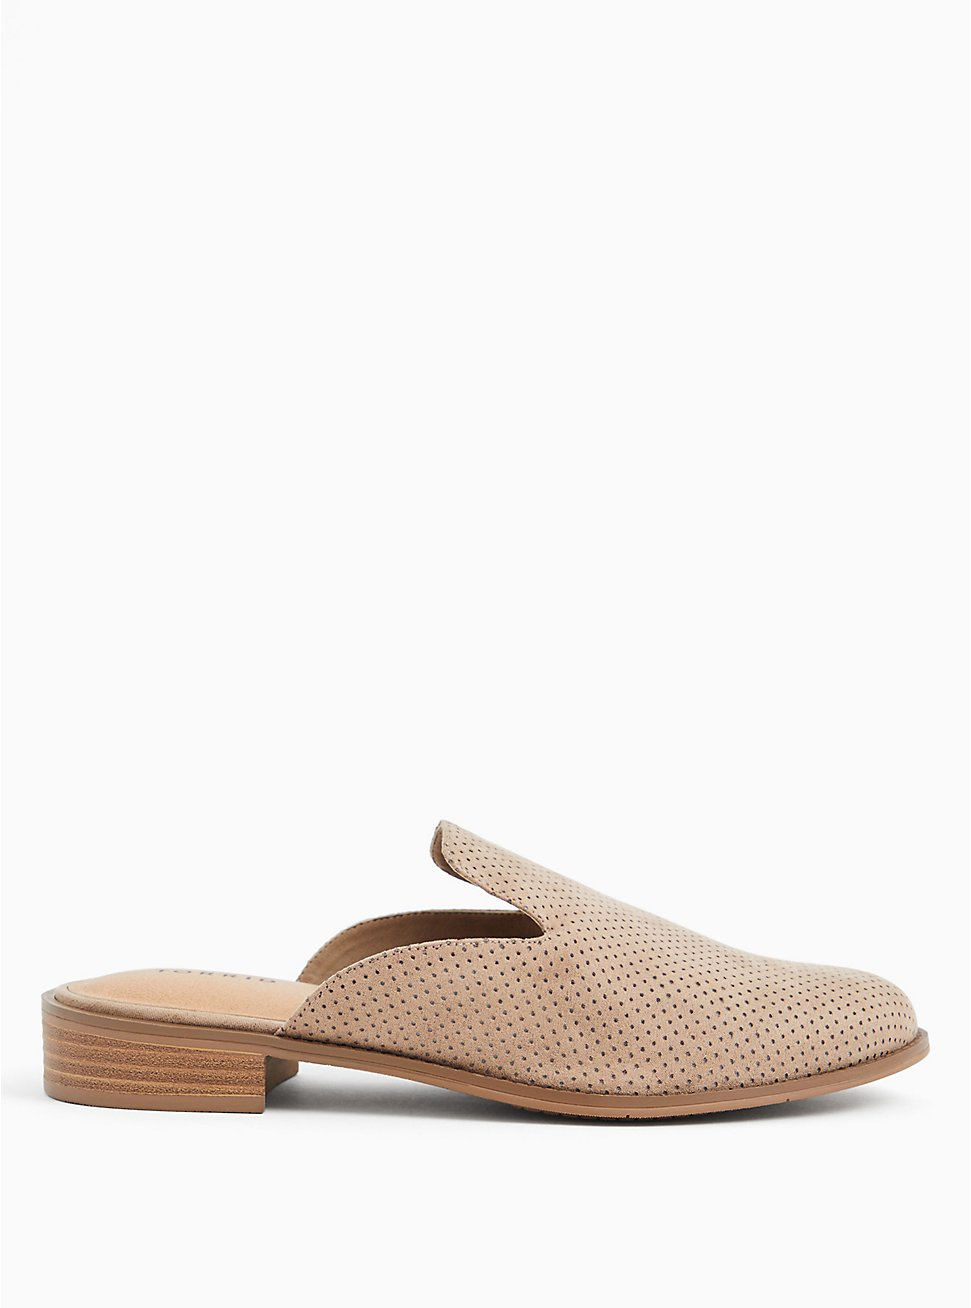 Taupe Faux Suede Perforated Mule Loafer (WW), , hi-res